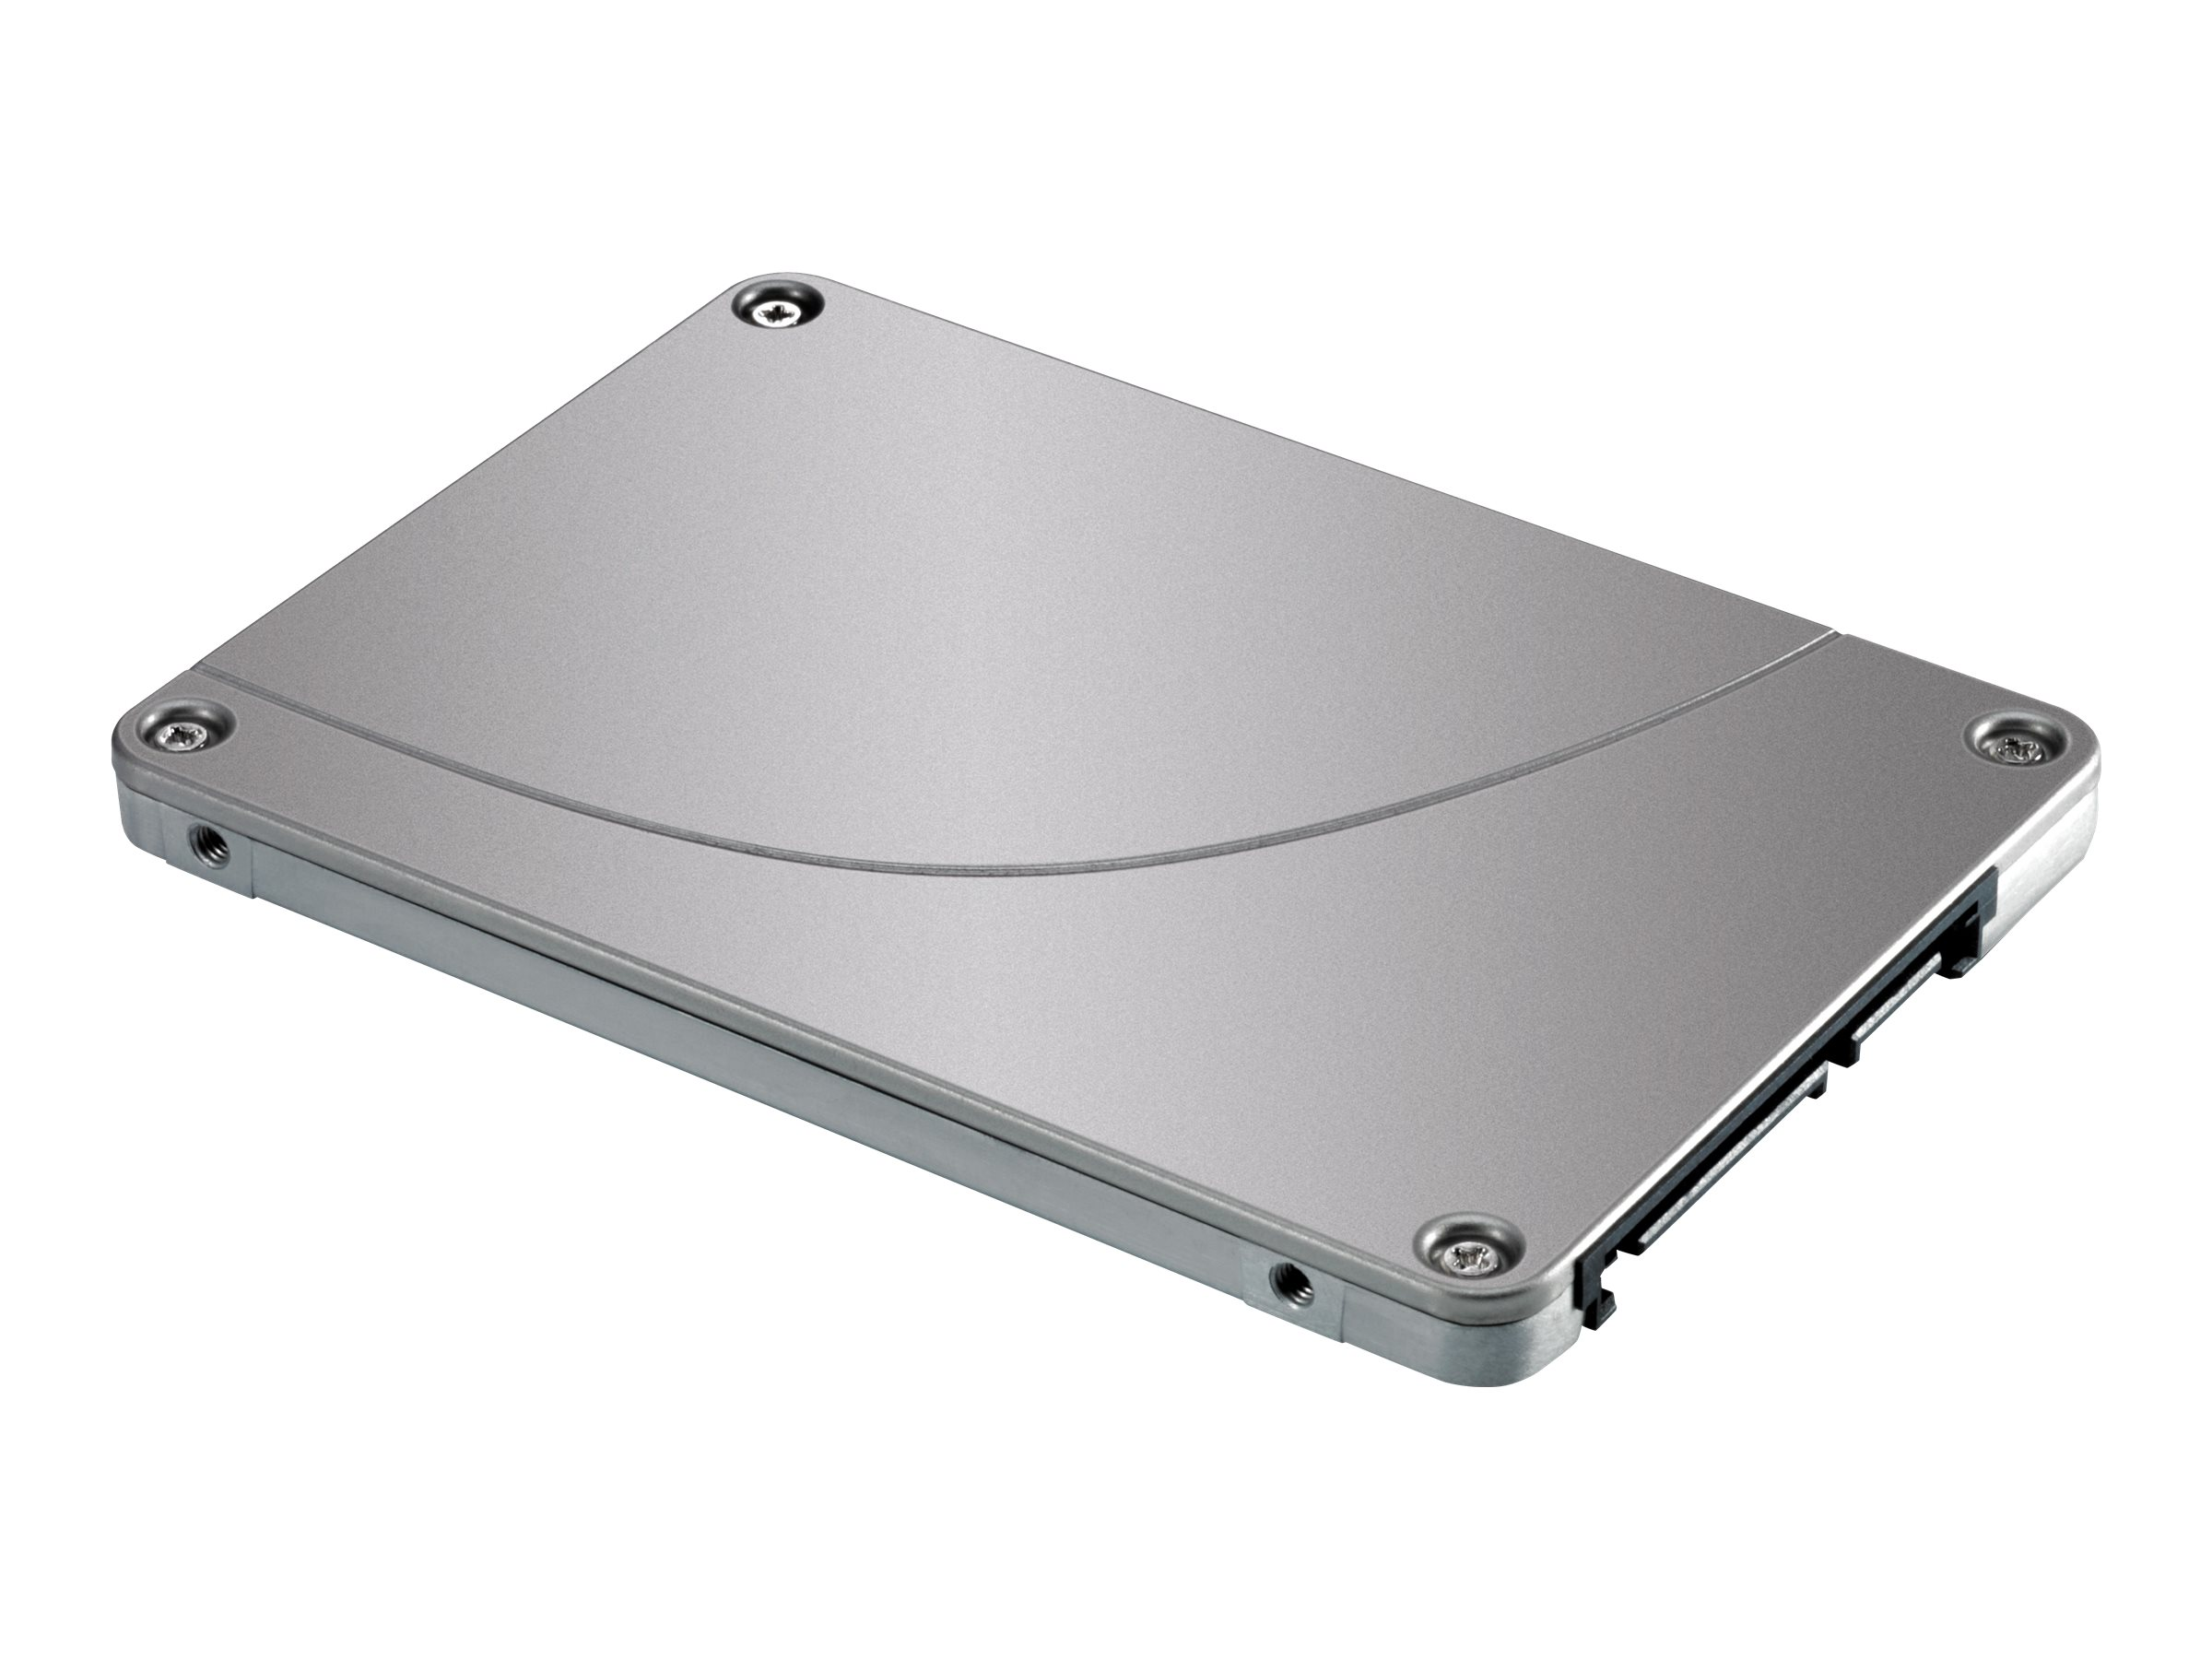 HP - solid state drive - 256 GB - SATA 6Gb/s